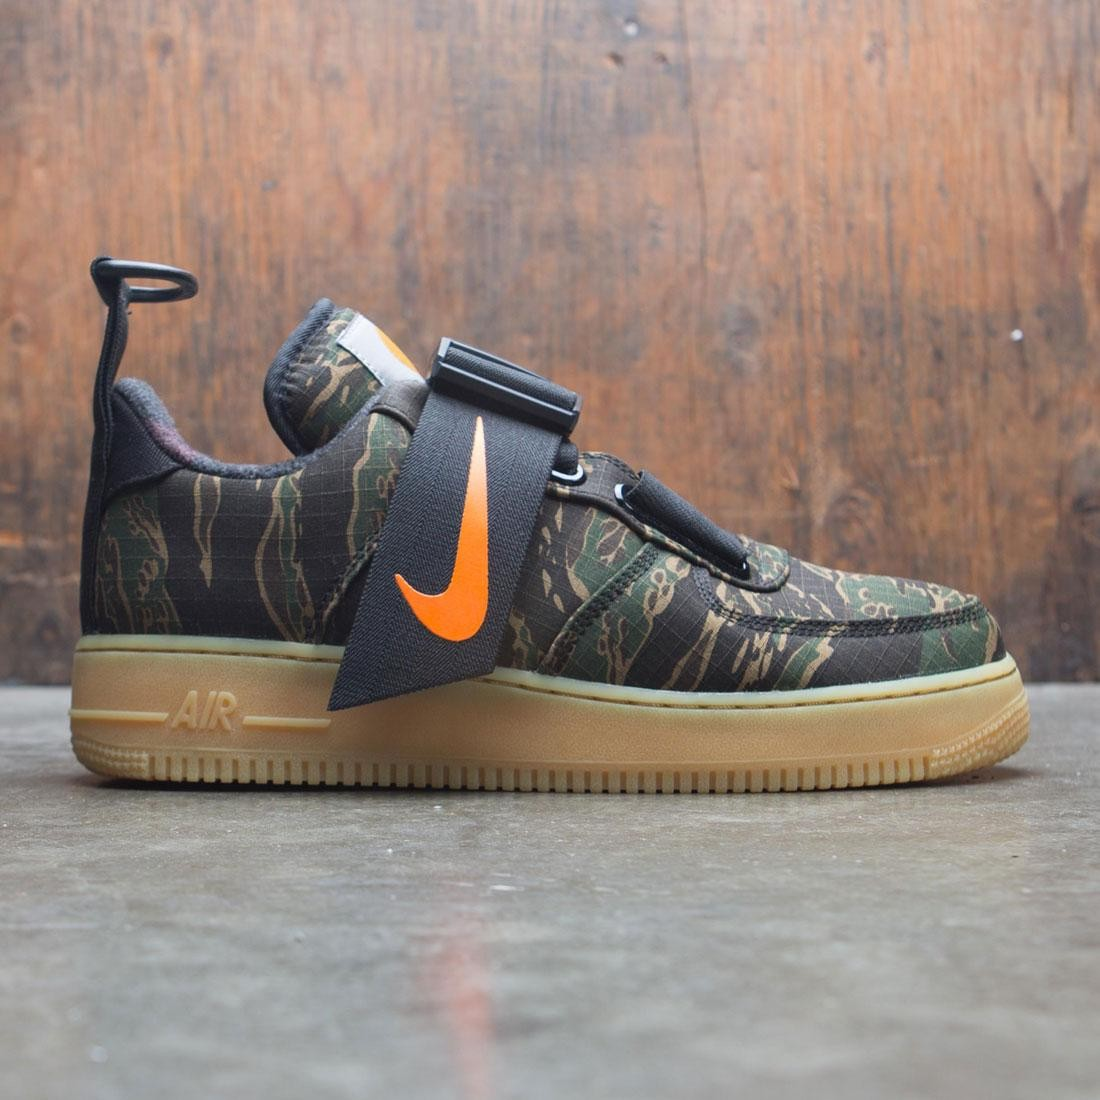 c6b2915e8957 nike men air force 1 ut low prm wip camo green total orange gum light brown